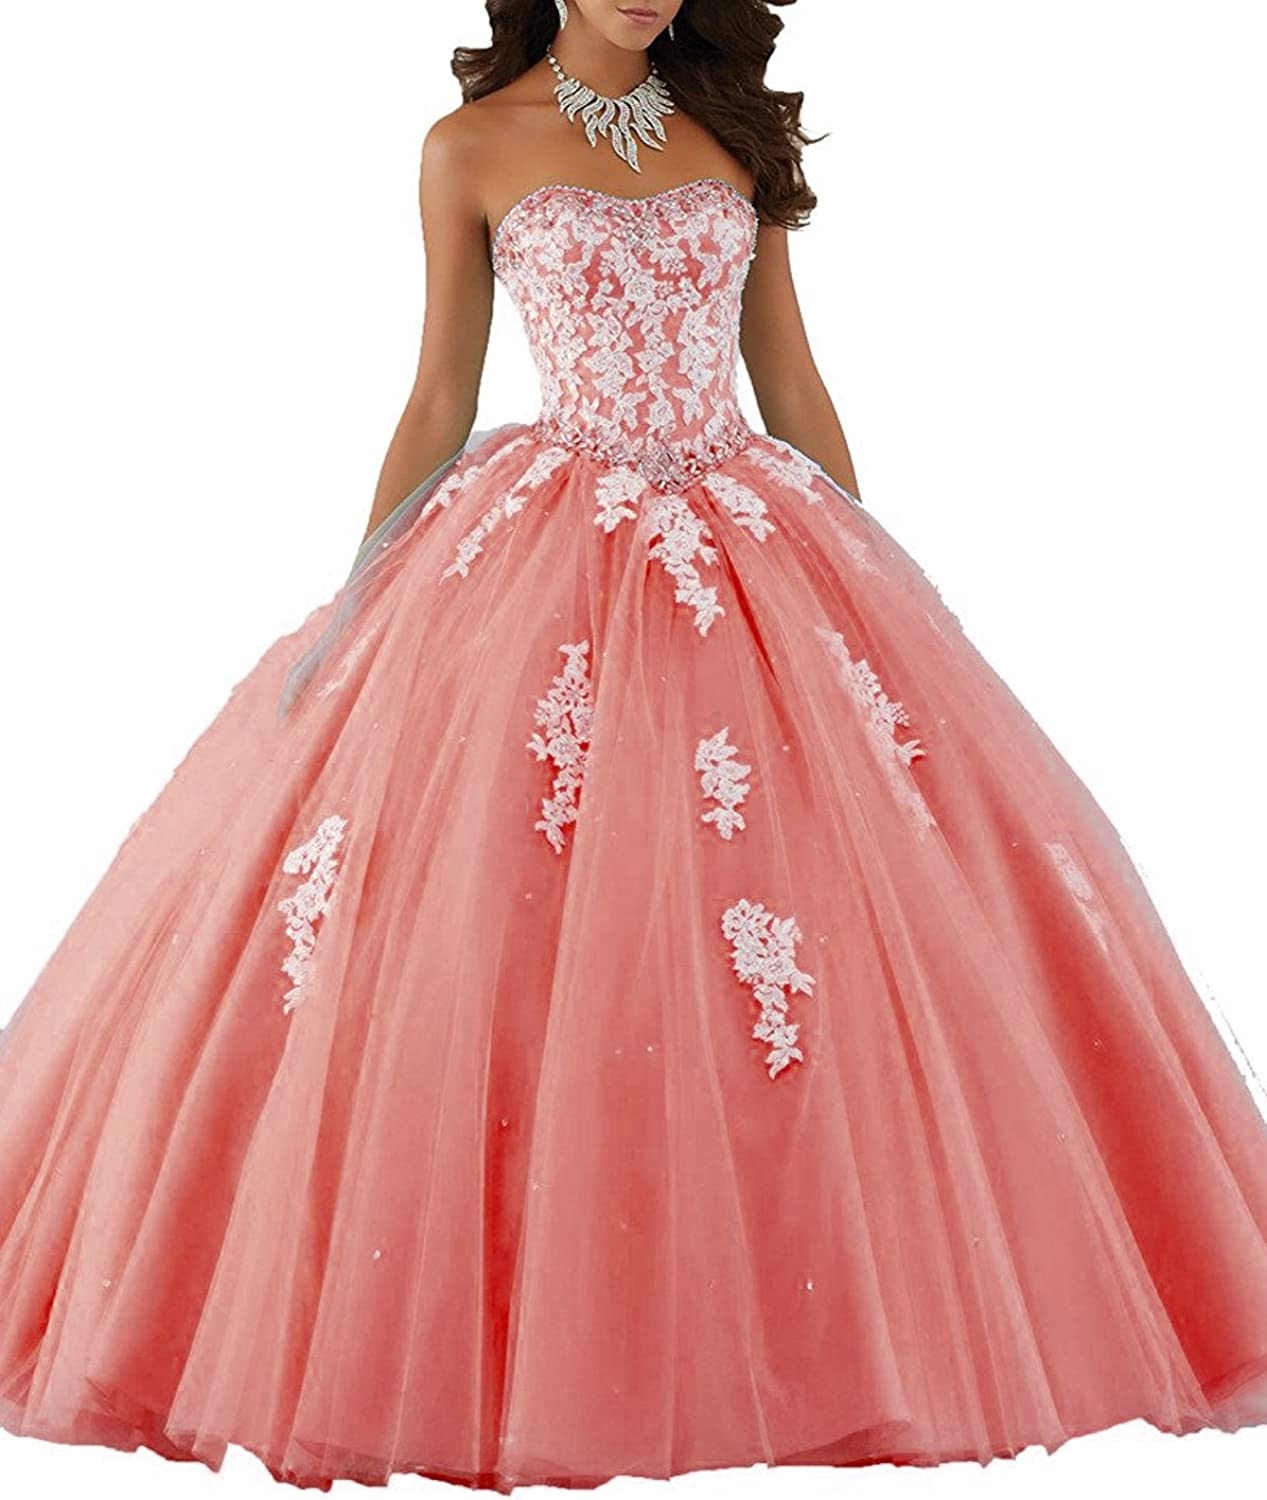 HSDJ Women's Appliques Sweet 16 Ball Gowns Long Beaded Quinceanera Dresses